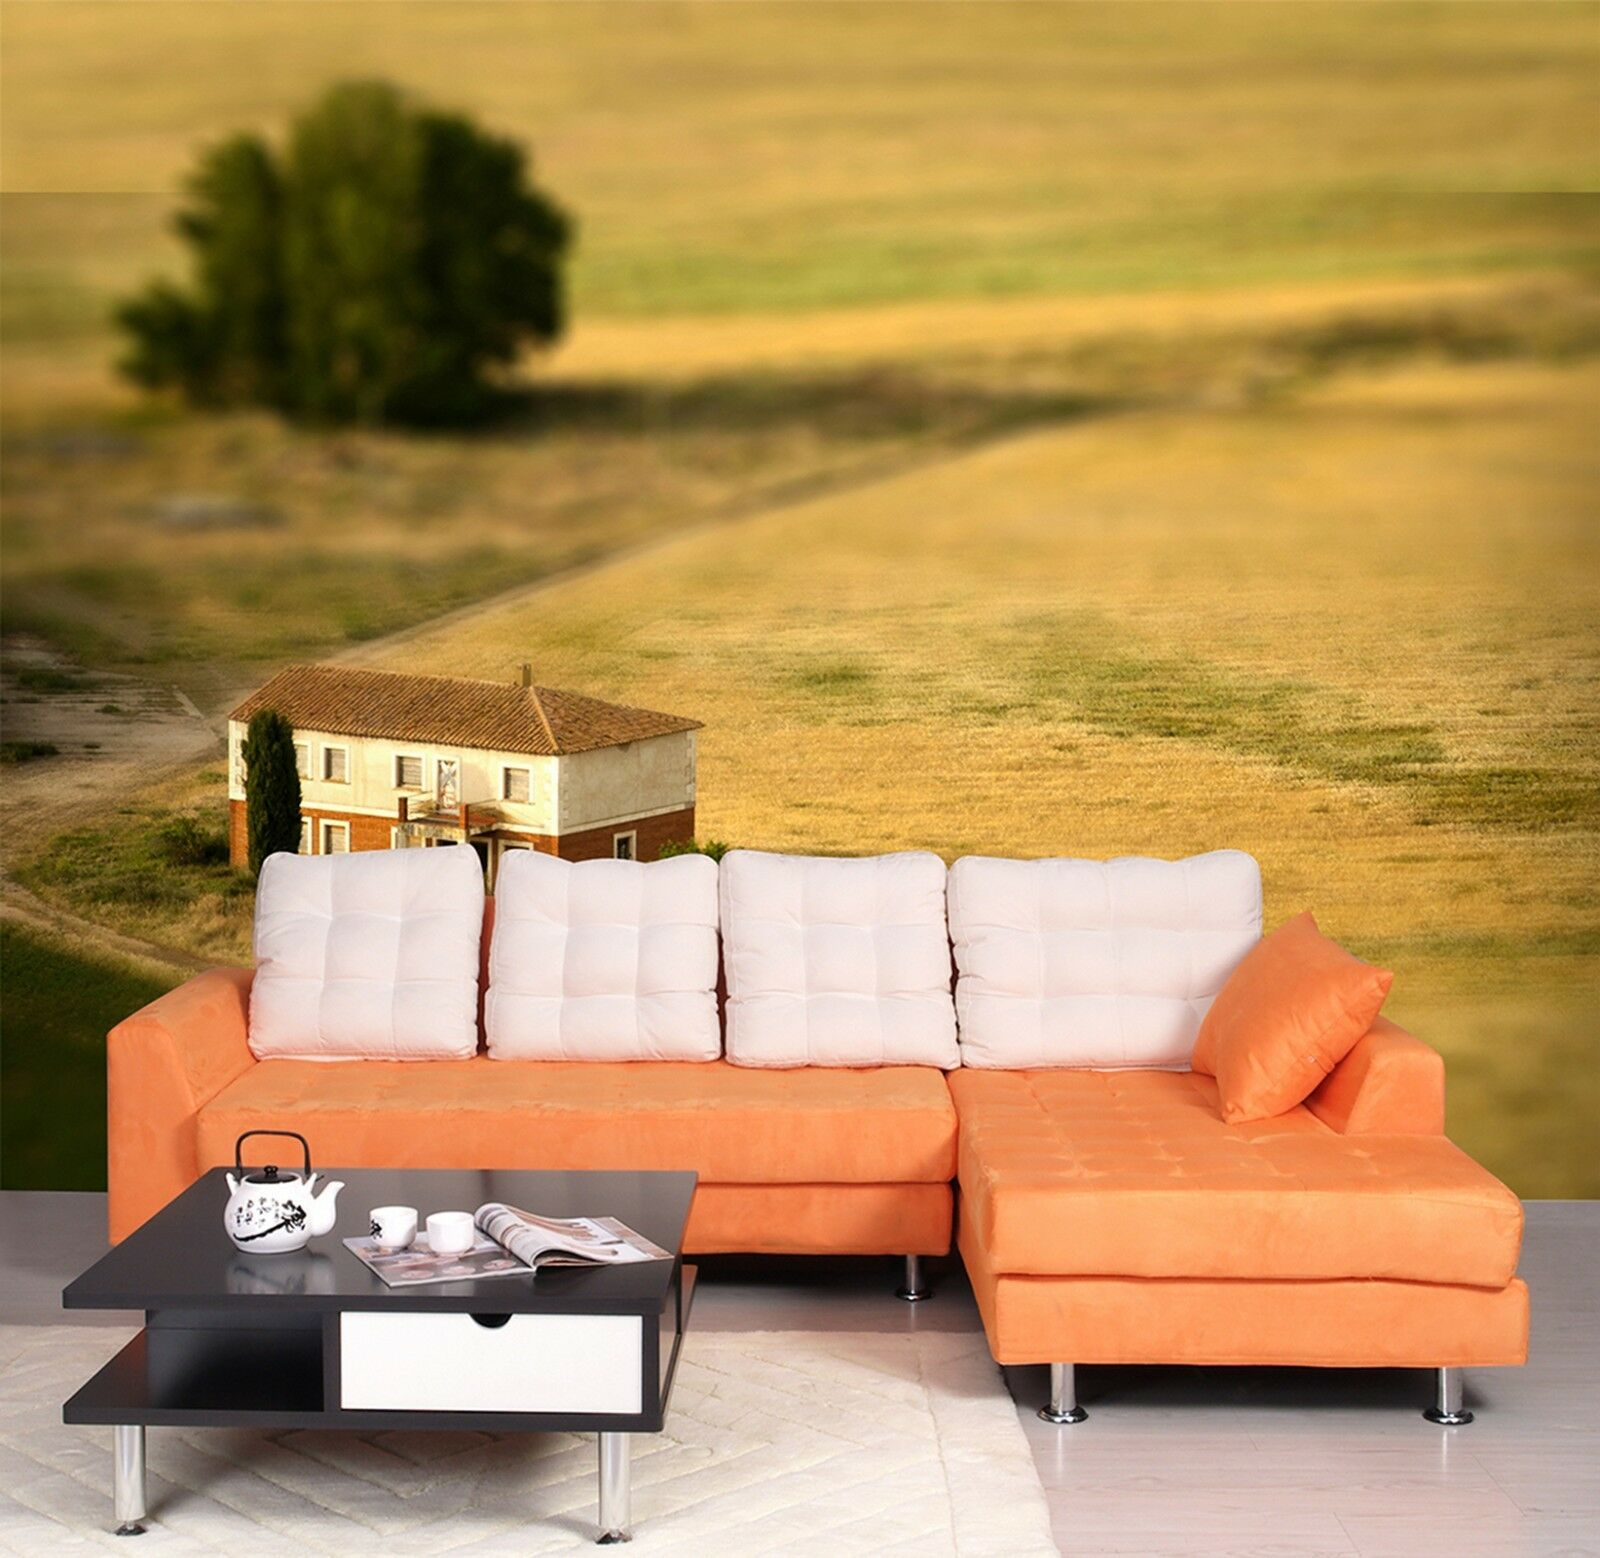 3D Paddy field house 335 Wall Paper Wall Print Decal Wall Indoor Murals Wall US